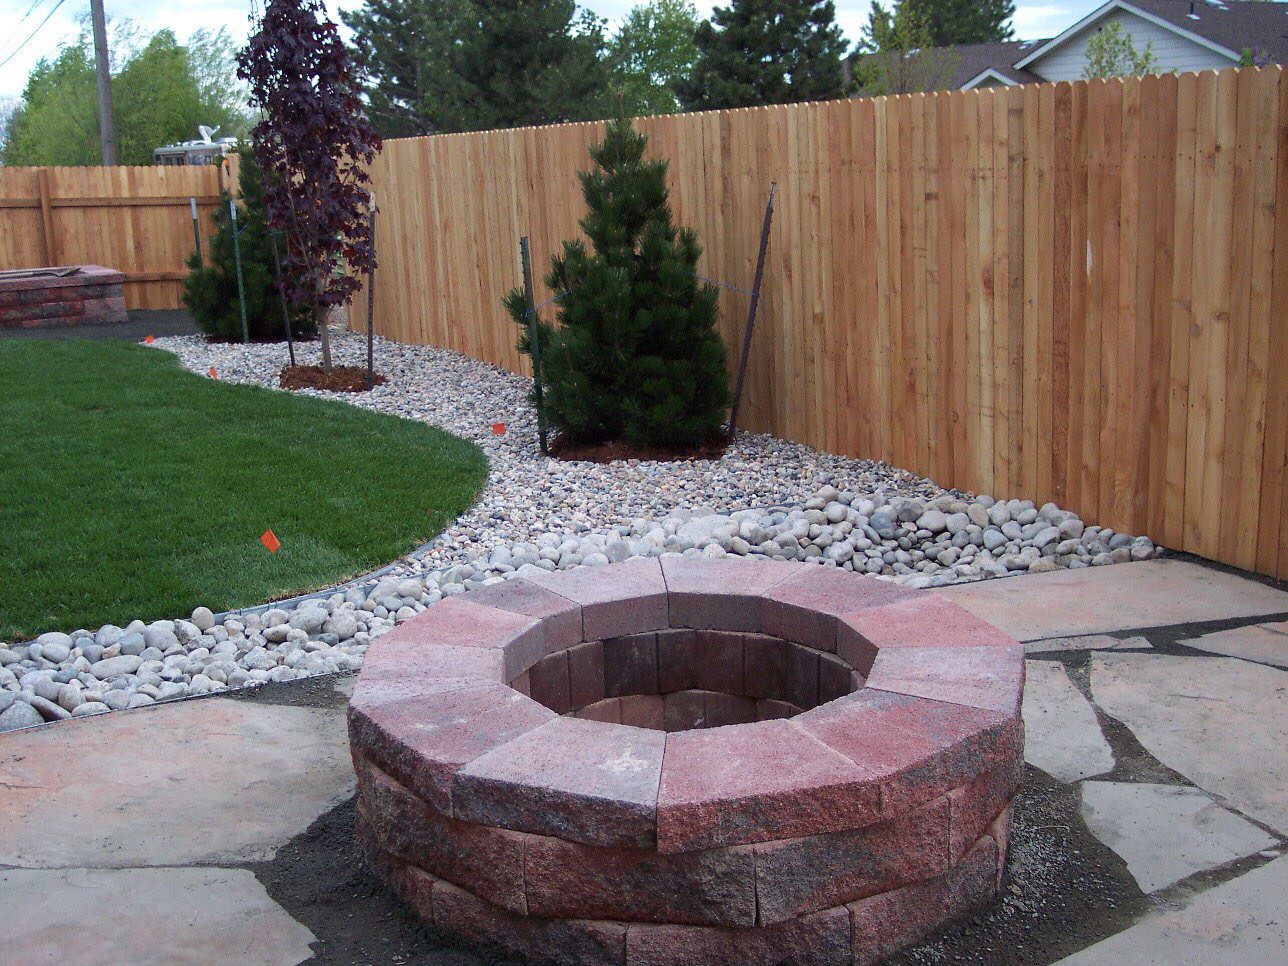 Versa Lok fire pit, fence, plantings, and rock install.